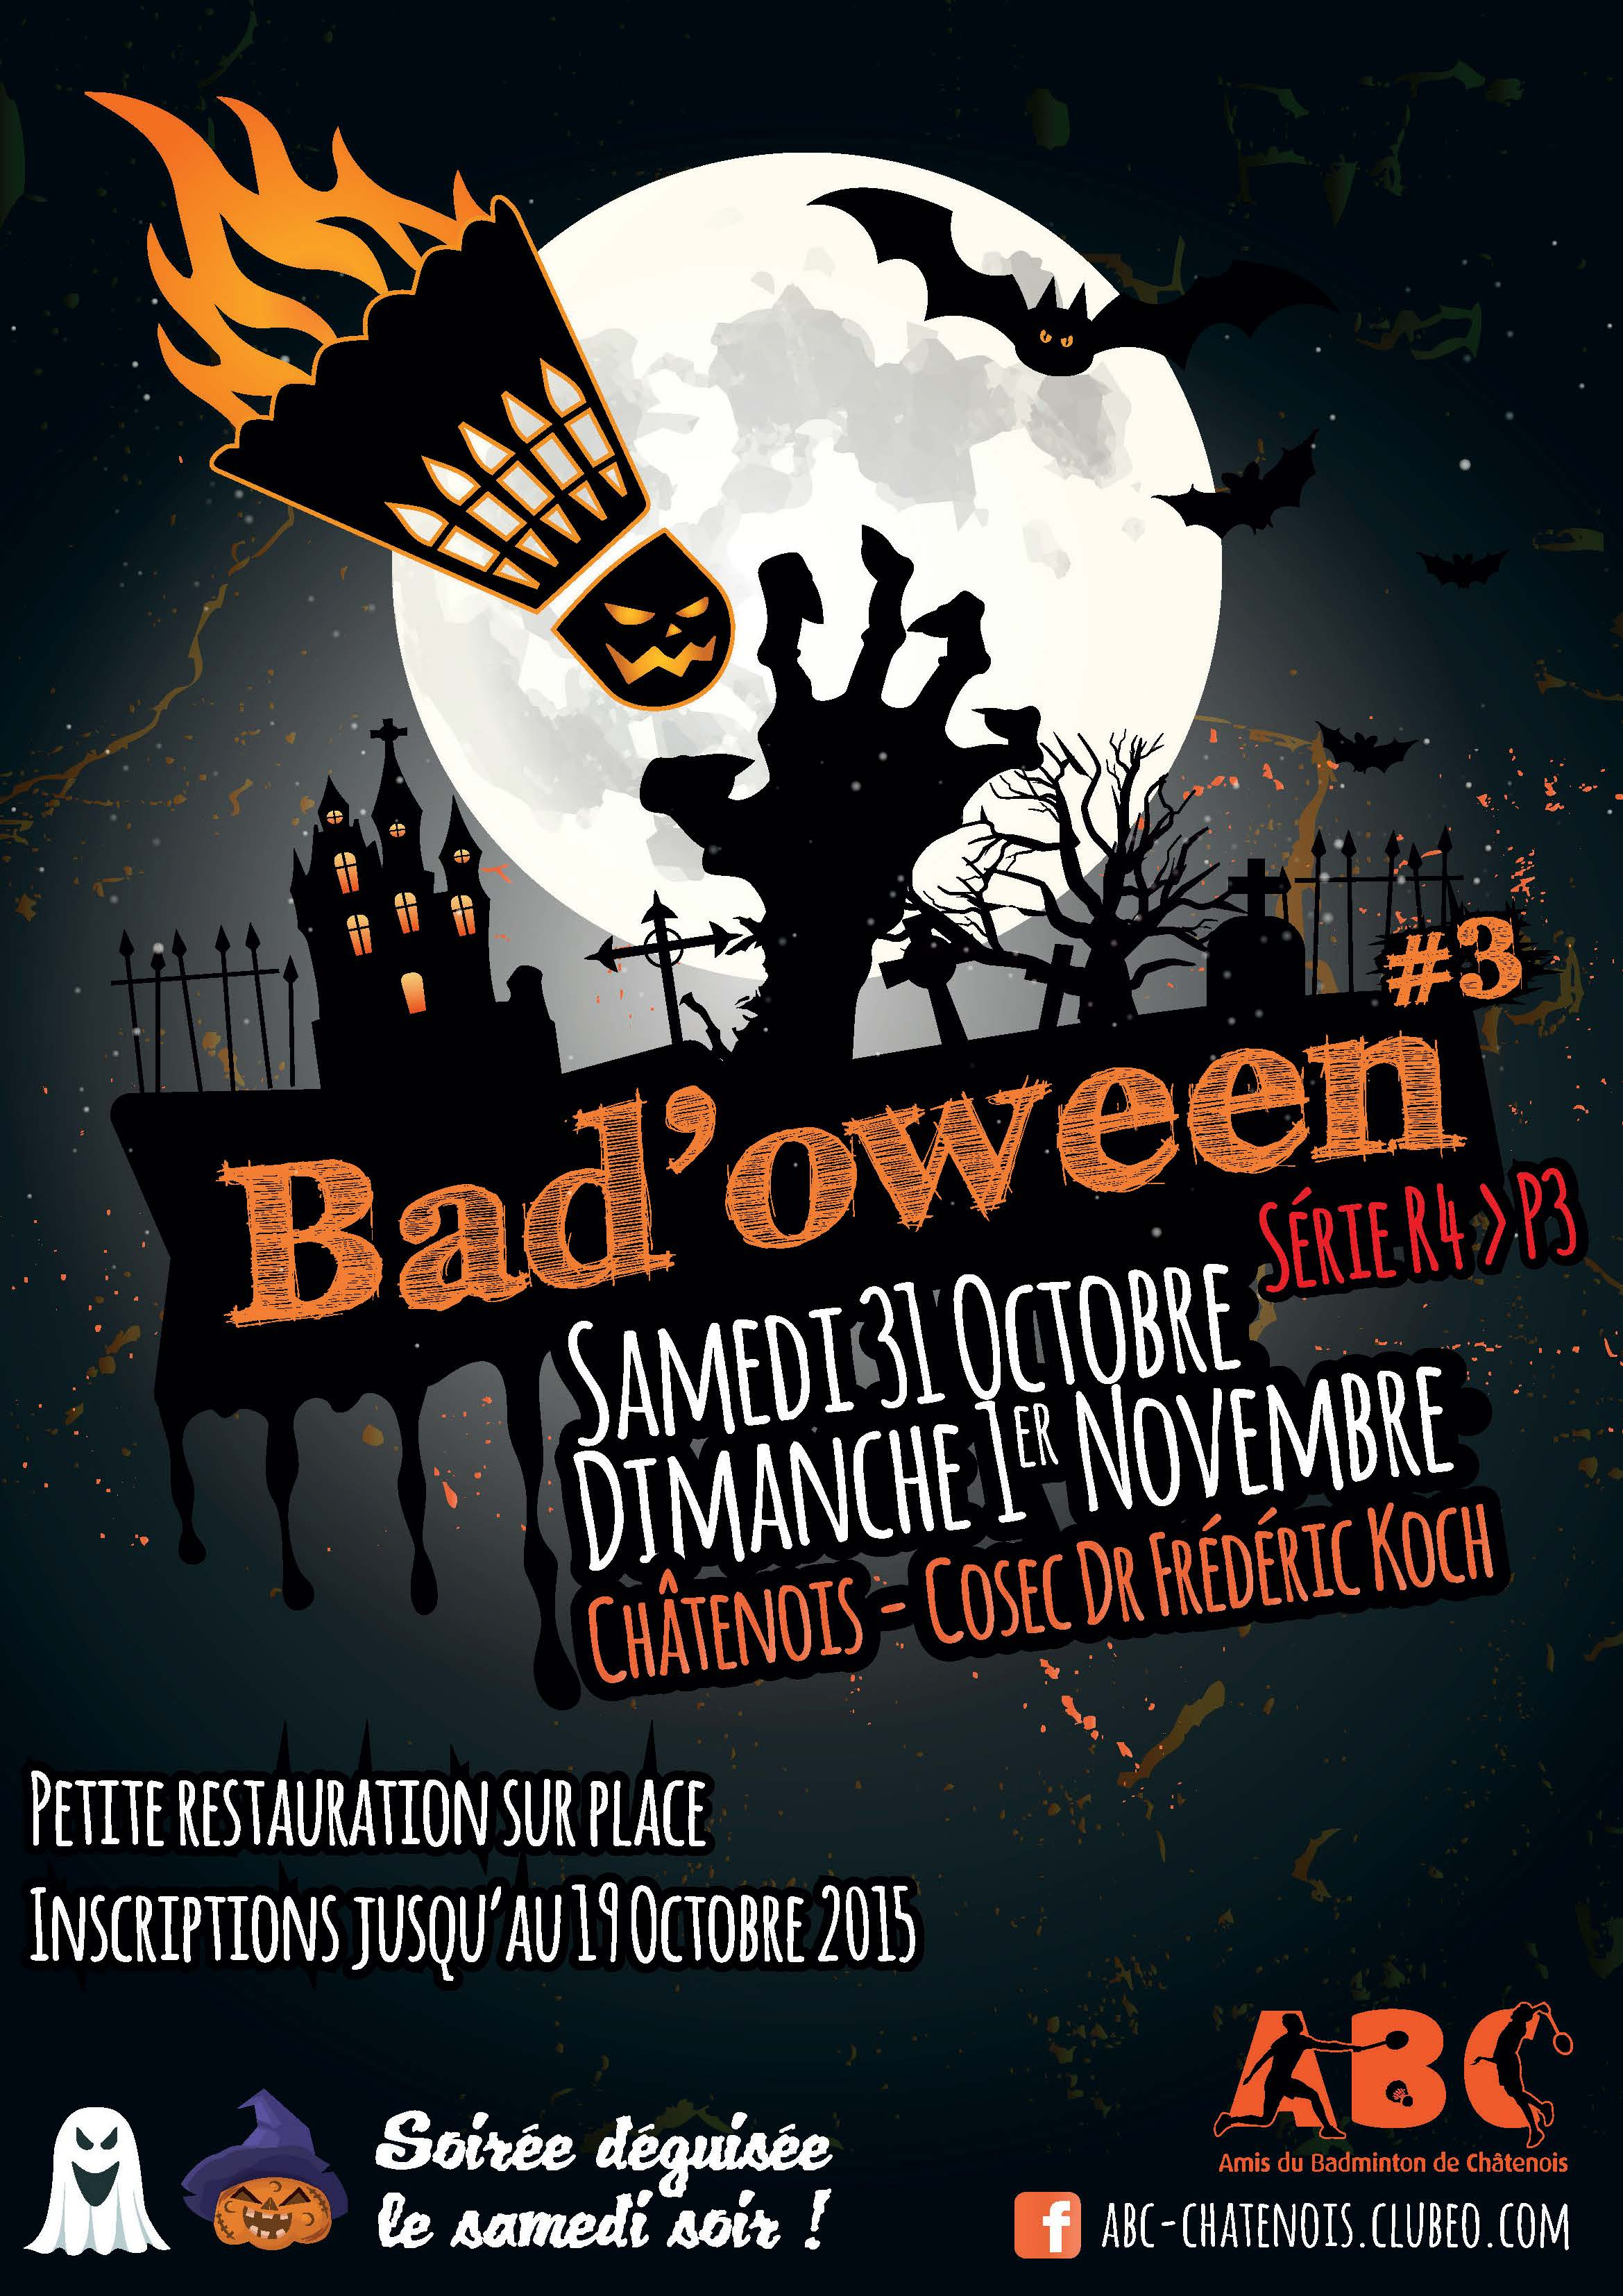 Affiche du tournoi Bad'oween